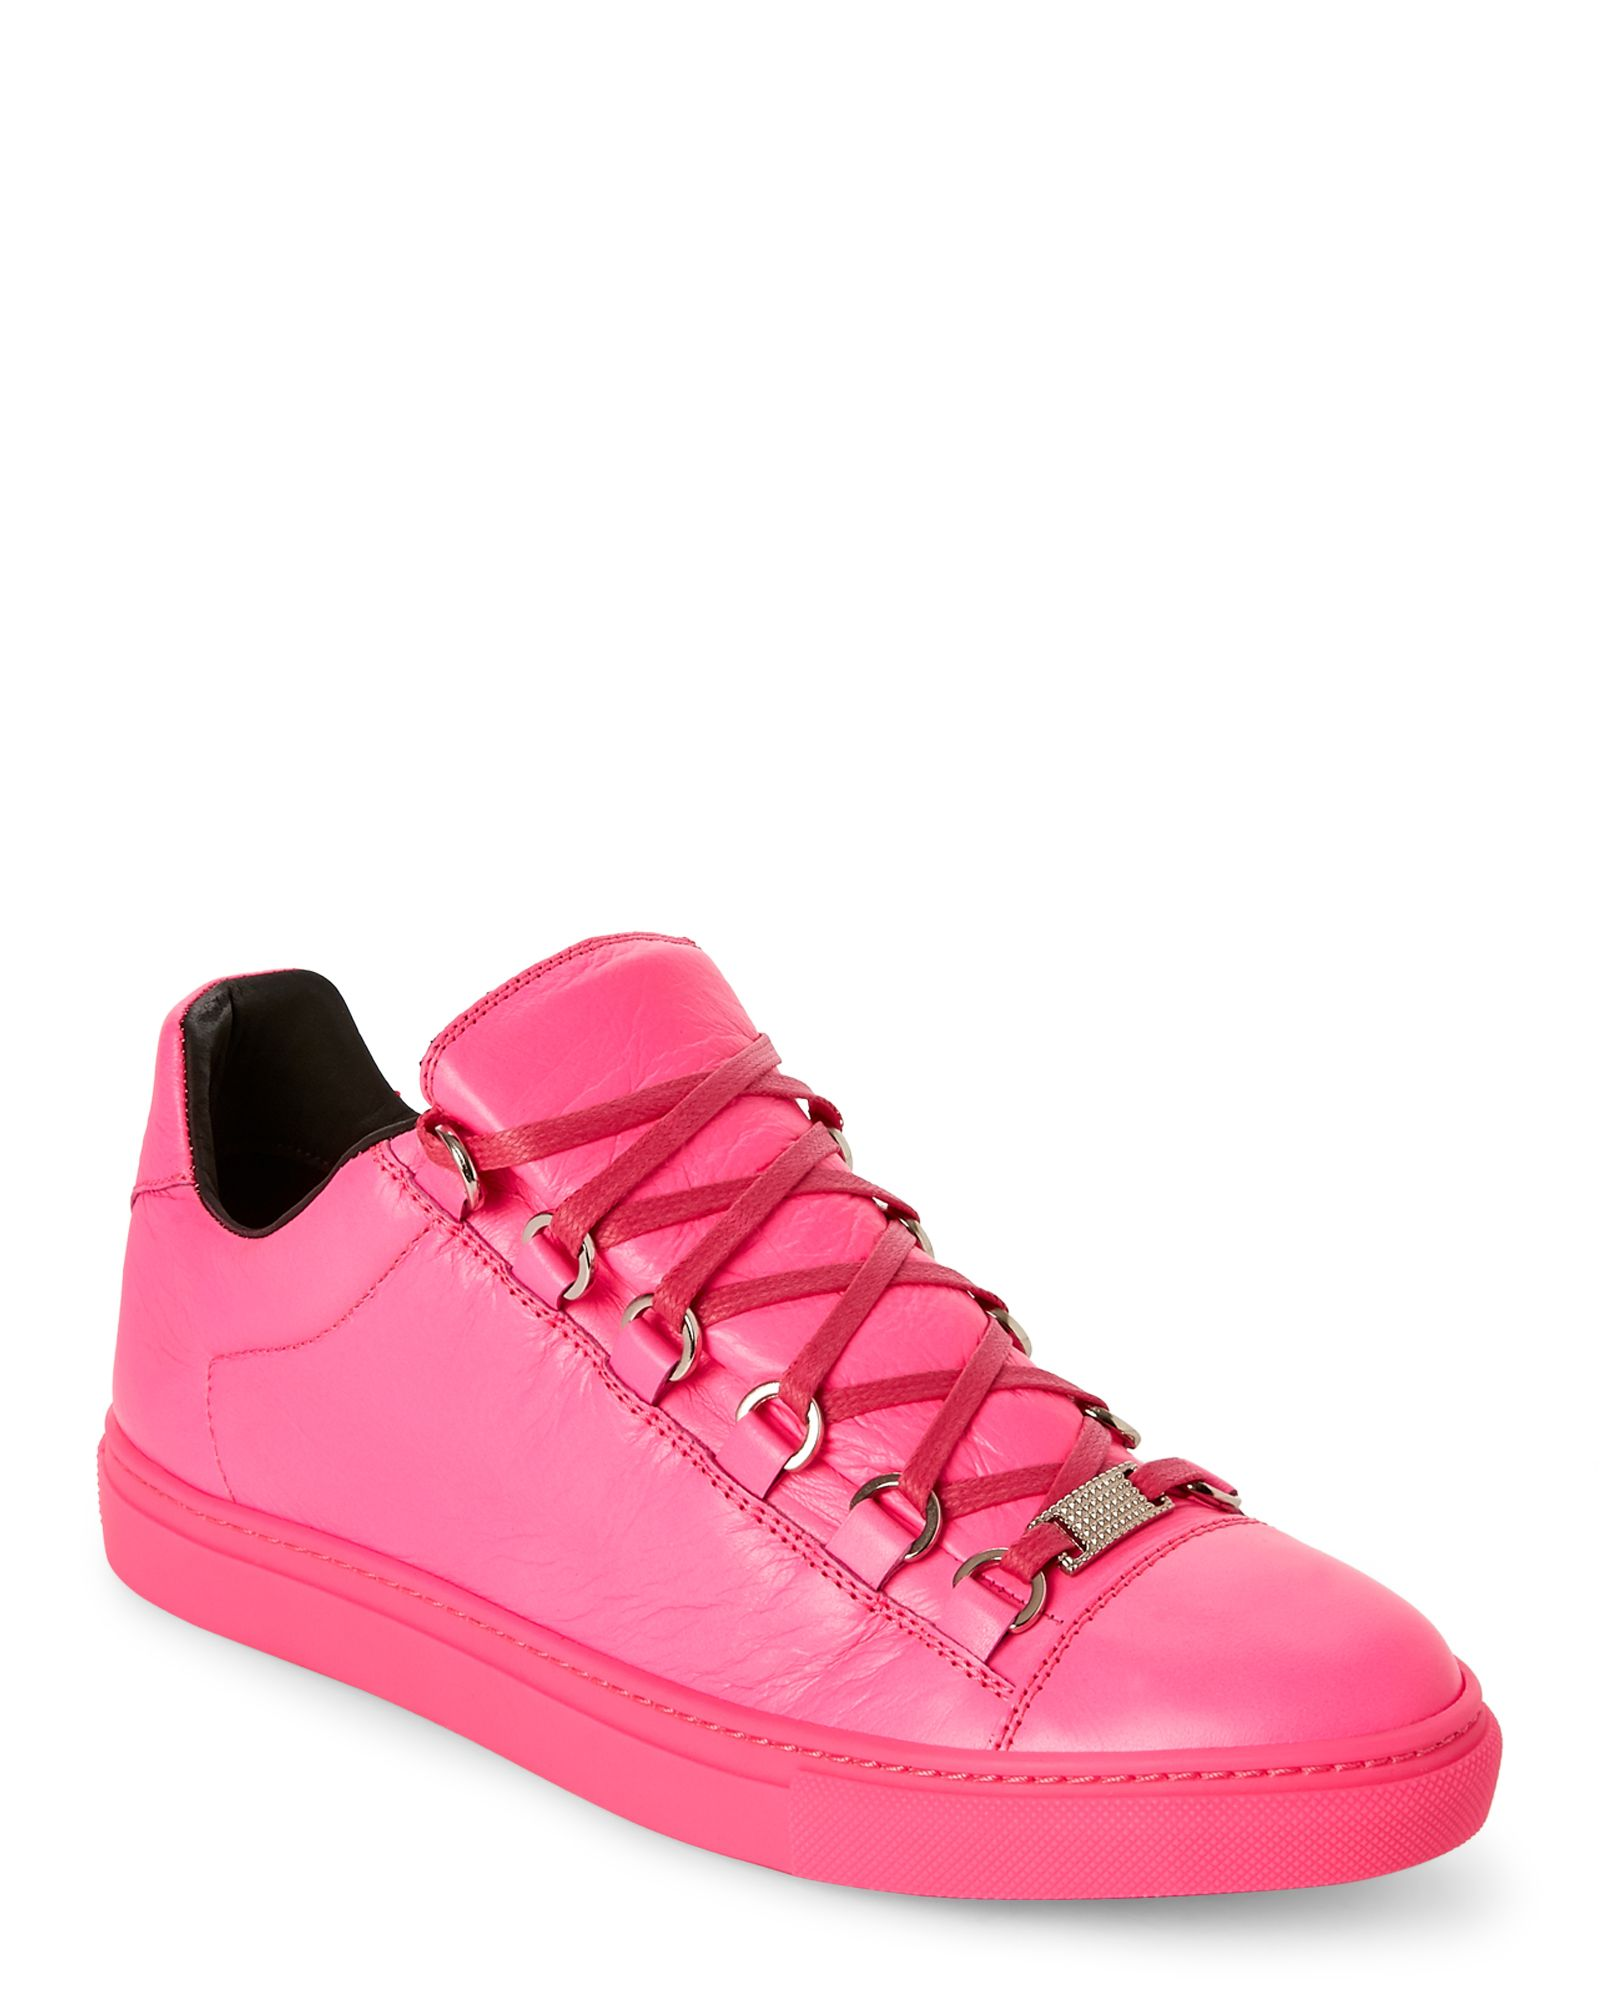 taille 40 5a9f6 344aa Fluo Rose Arena Low Top Sneakers   *Apparel & Accessories ...